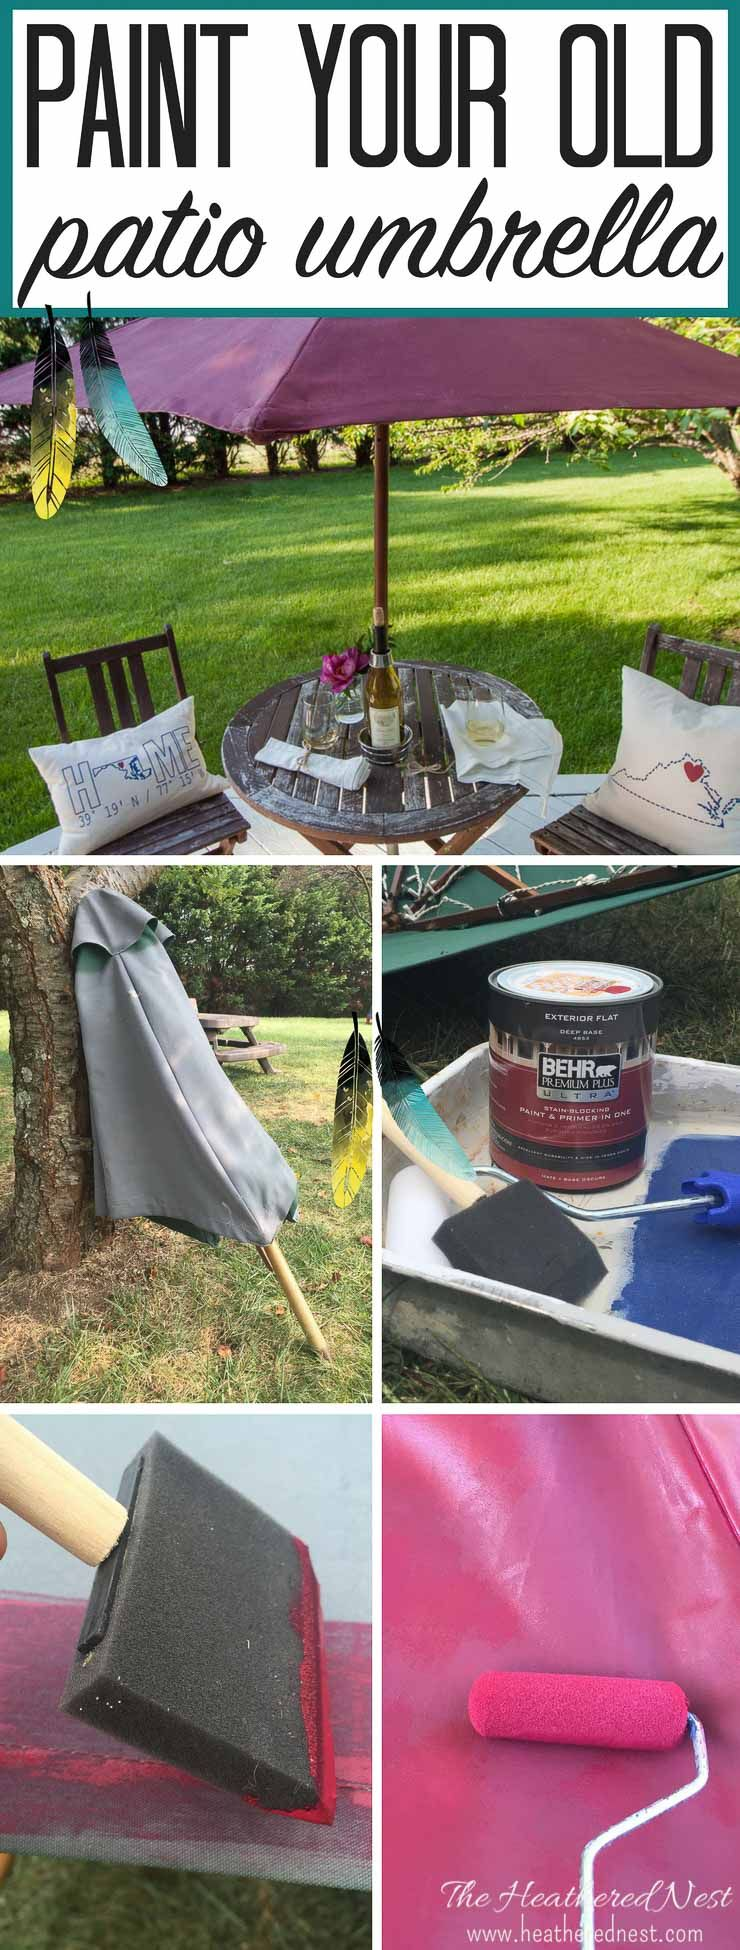 NEVER Would Have Thought To Try This!! DIY Umbrella Painting DIY Painted  Patio